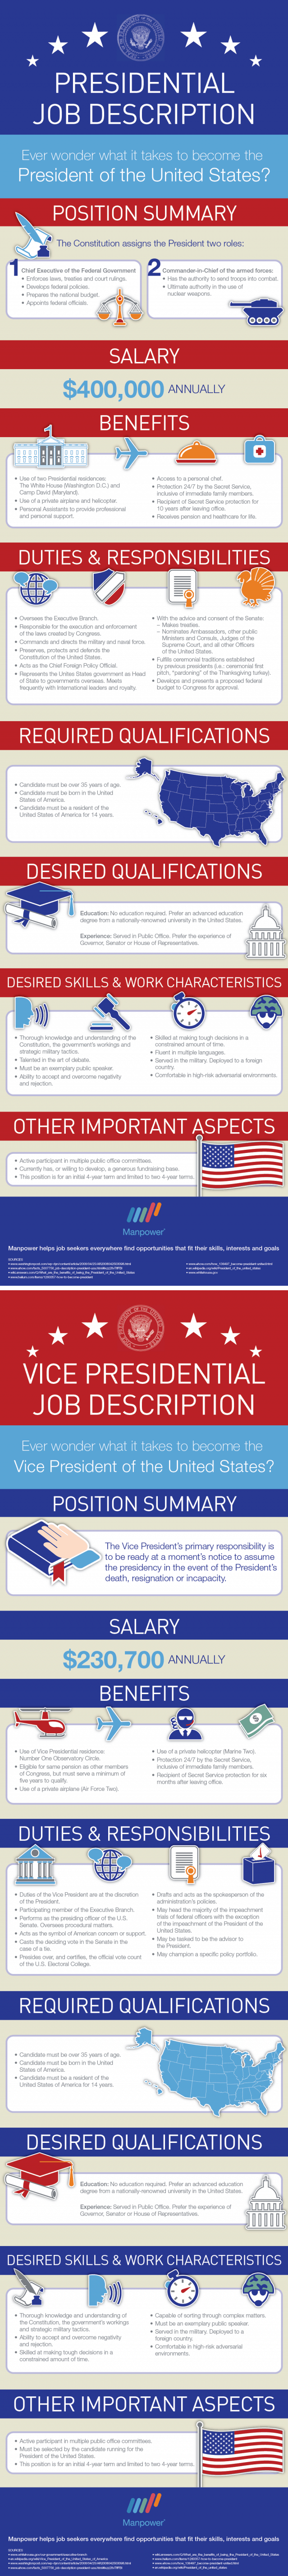 president-and-vice-president-job-descriptions